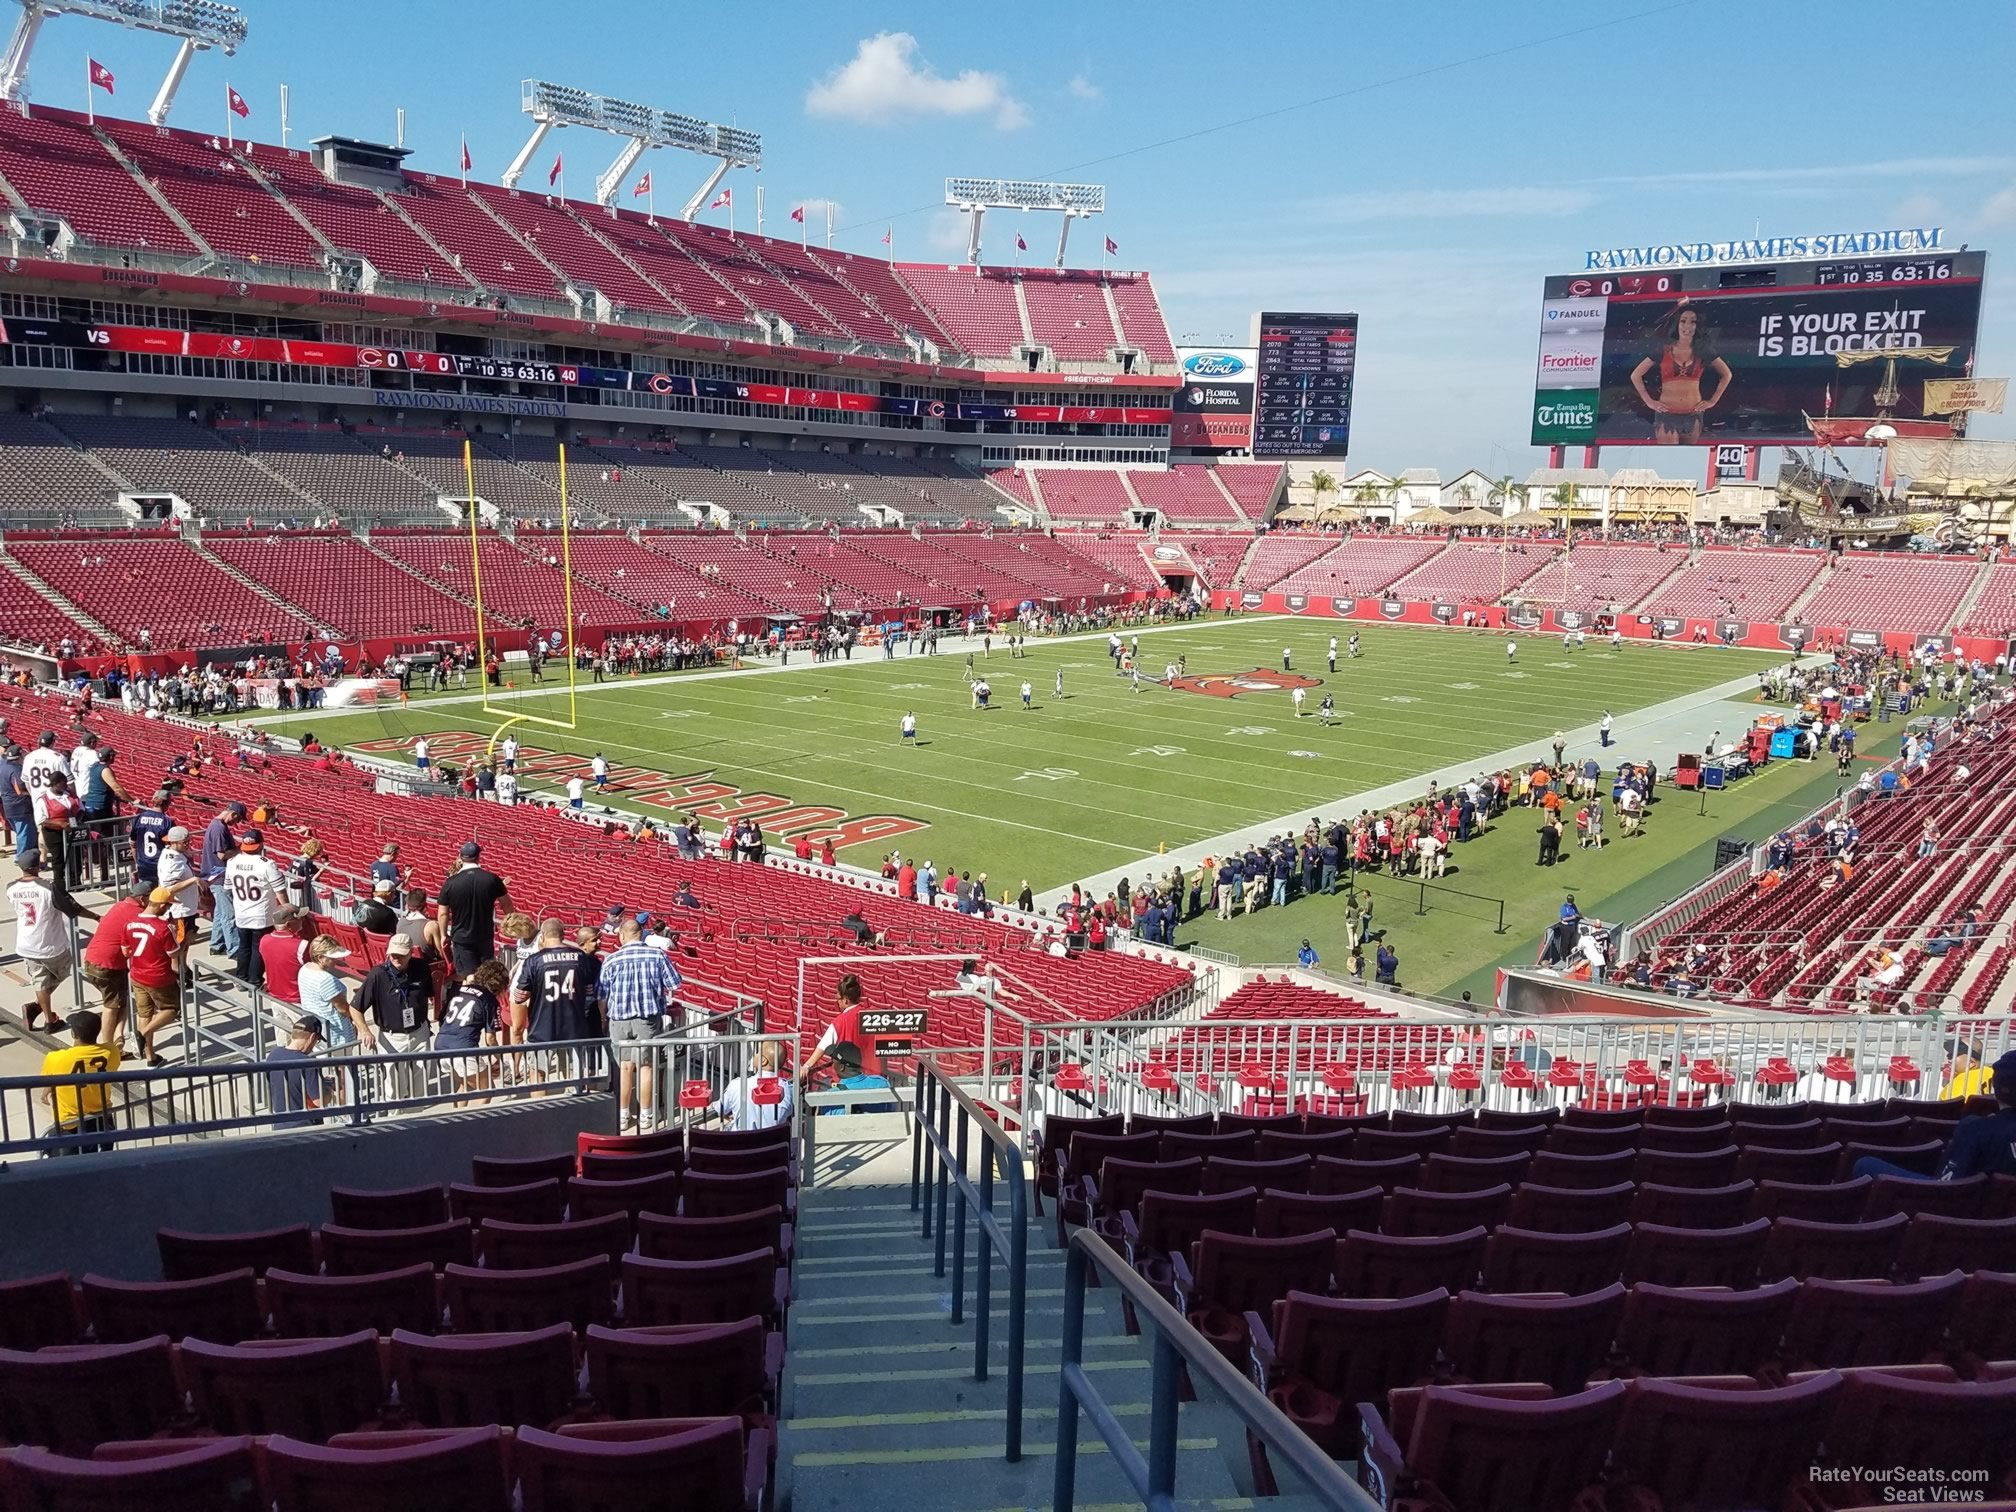 Seat View for Raymond James Stadium Section 227, Row L